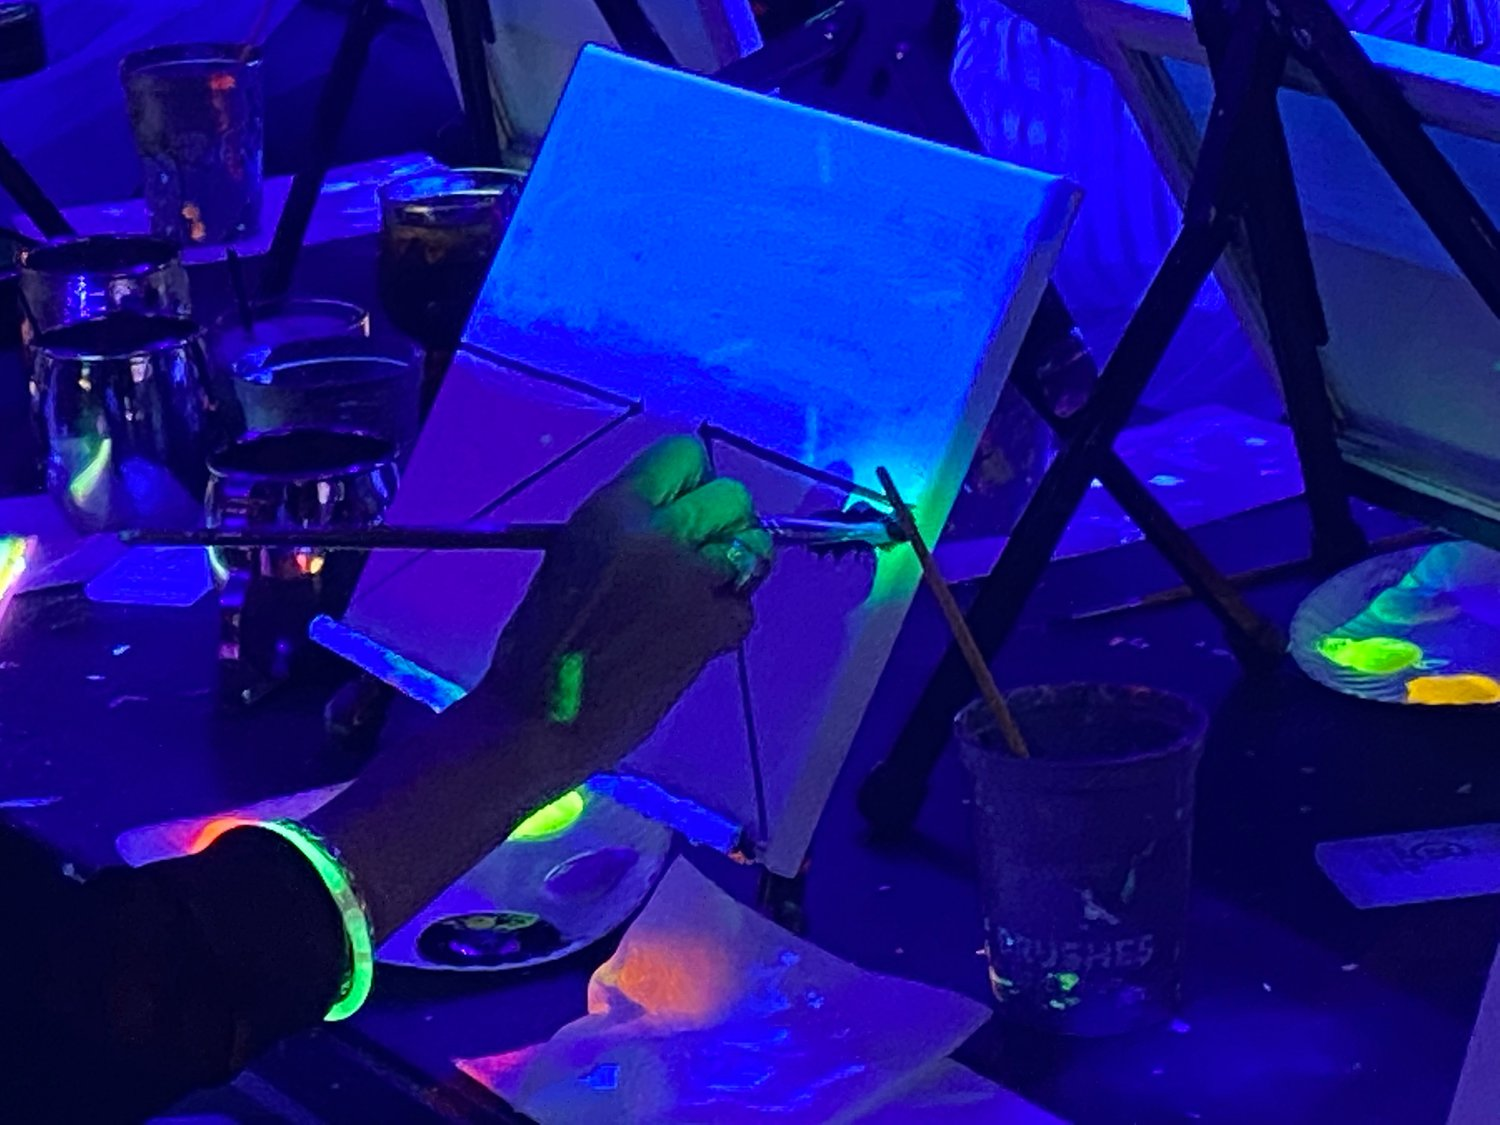 Under the black light, the colors popped as event attendees followed the step-by-step instructions.